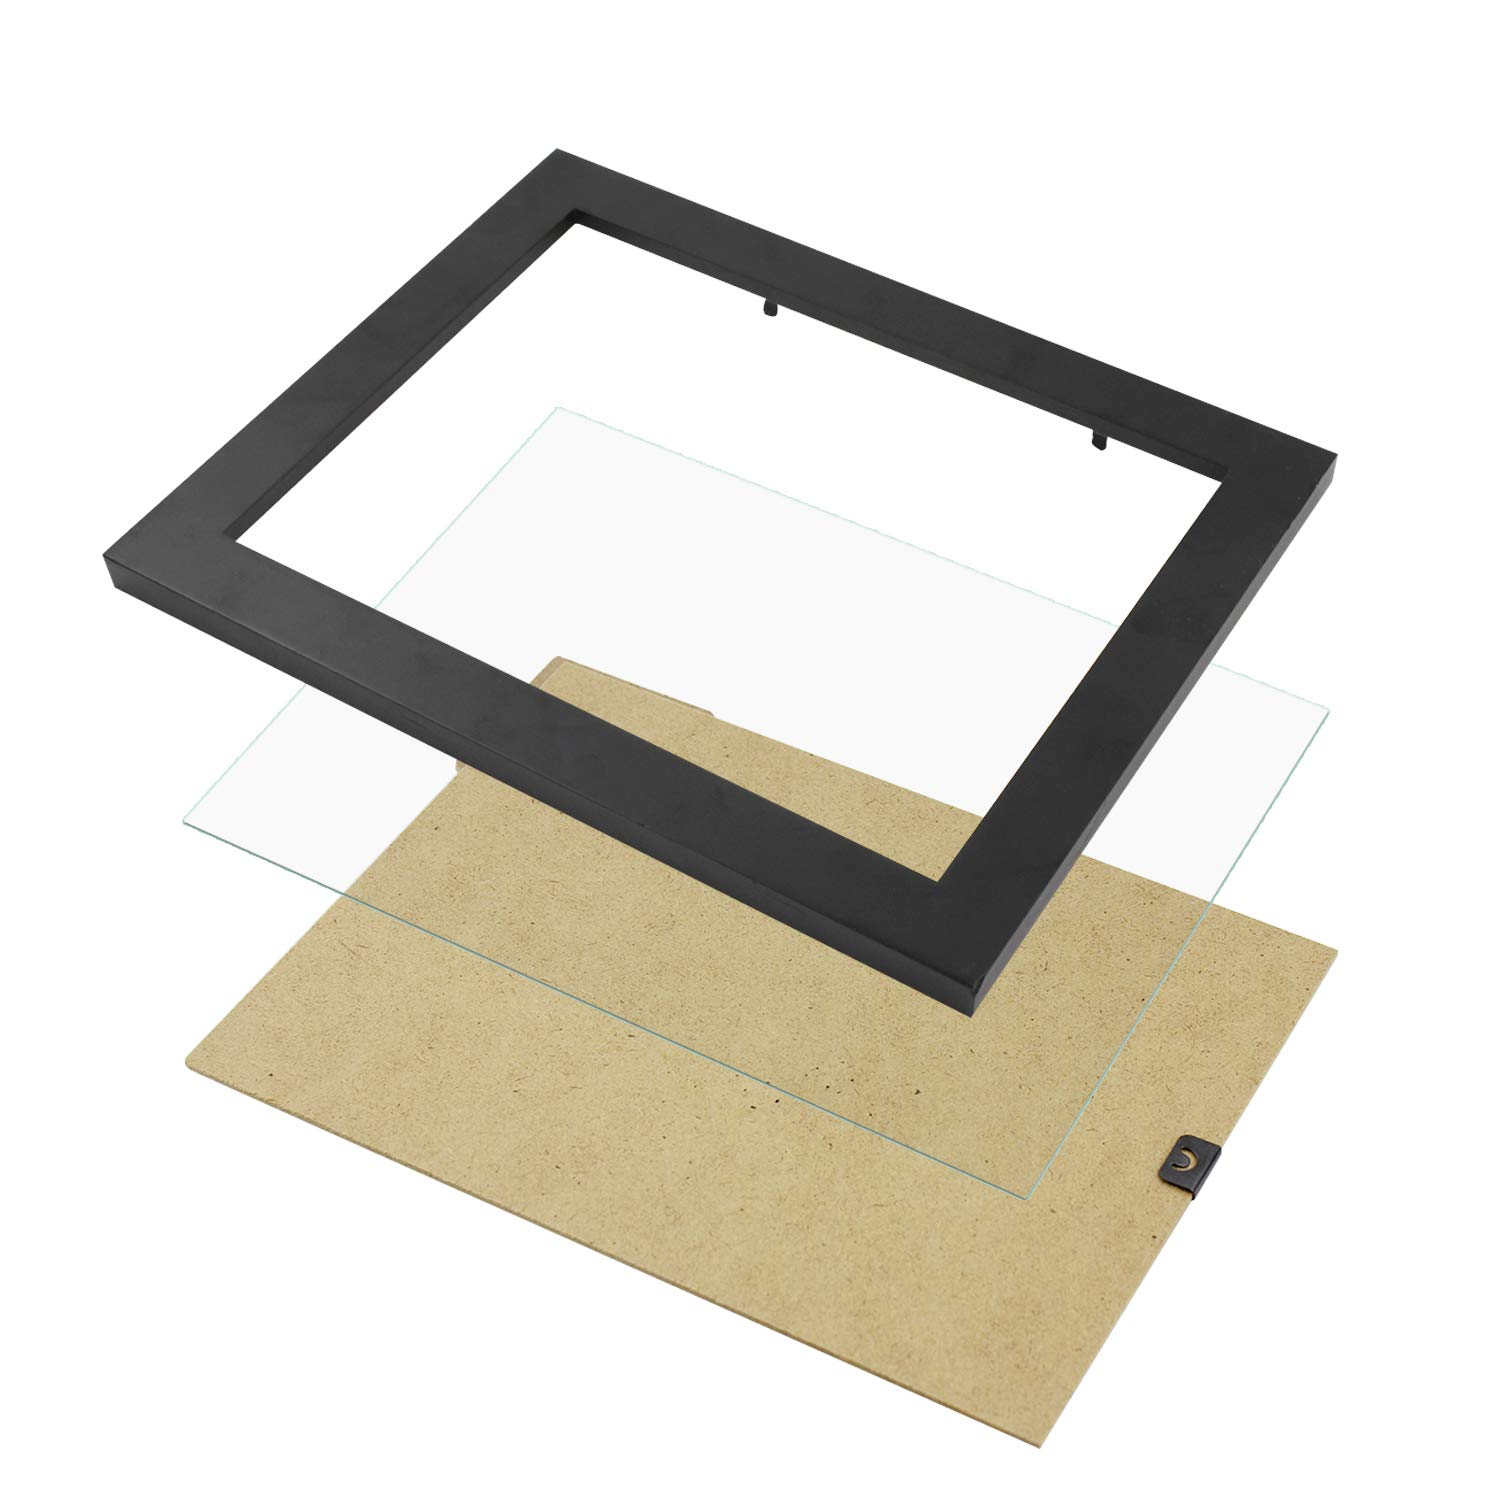 Diswoe 6x8 Black Picture Frame Made of Solid Wood with Mat to Display Pictures Photo Frame for Wall & Tabletop - Wall Mounting Material Included by Diswoe (Image #5)